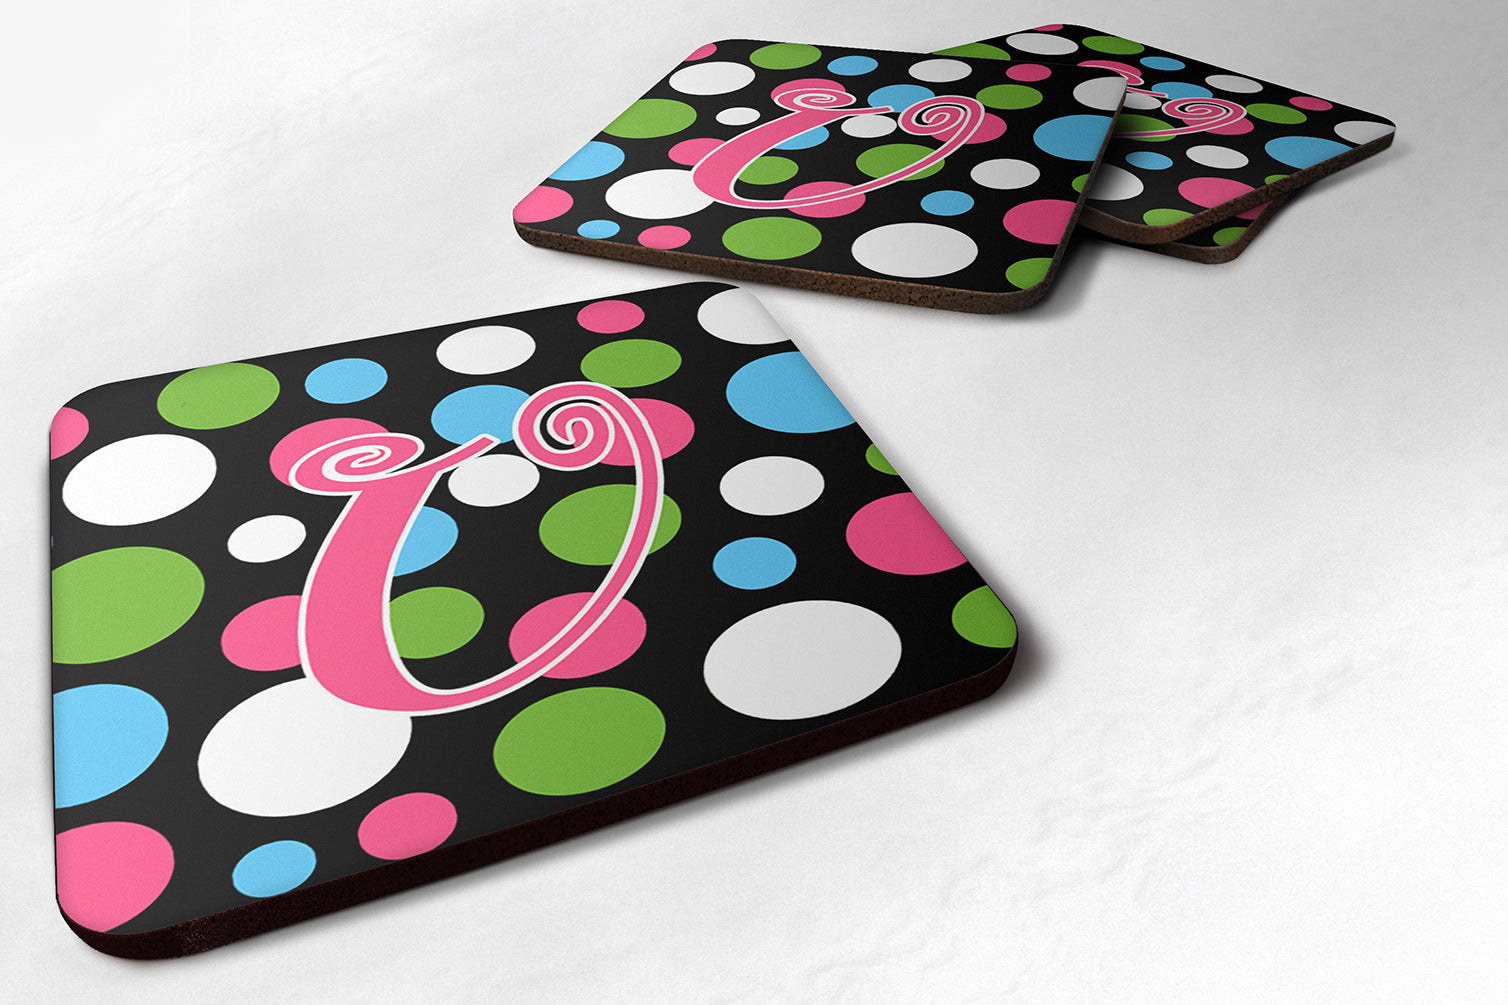 Set of 4 Monogram - Polkadots and Pink Foam Coasters Initial Letter U by Caroline's Treasures